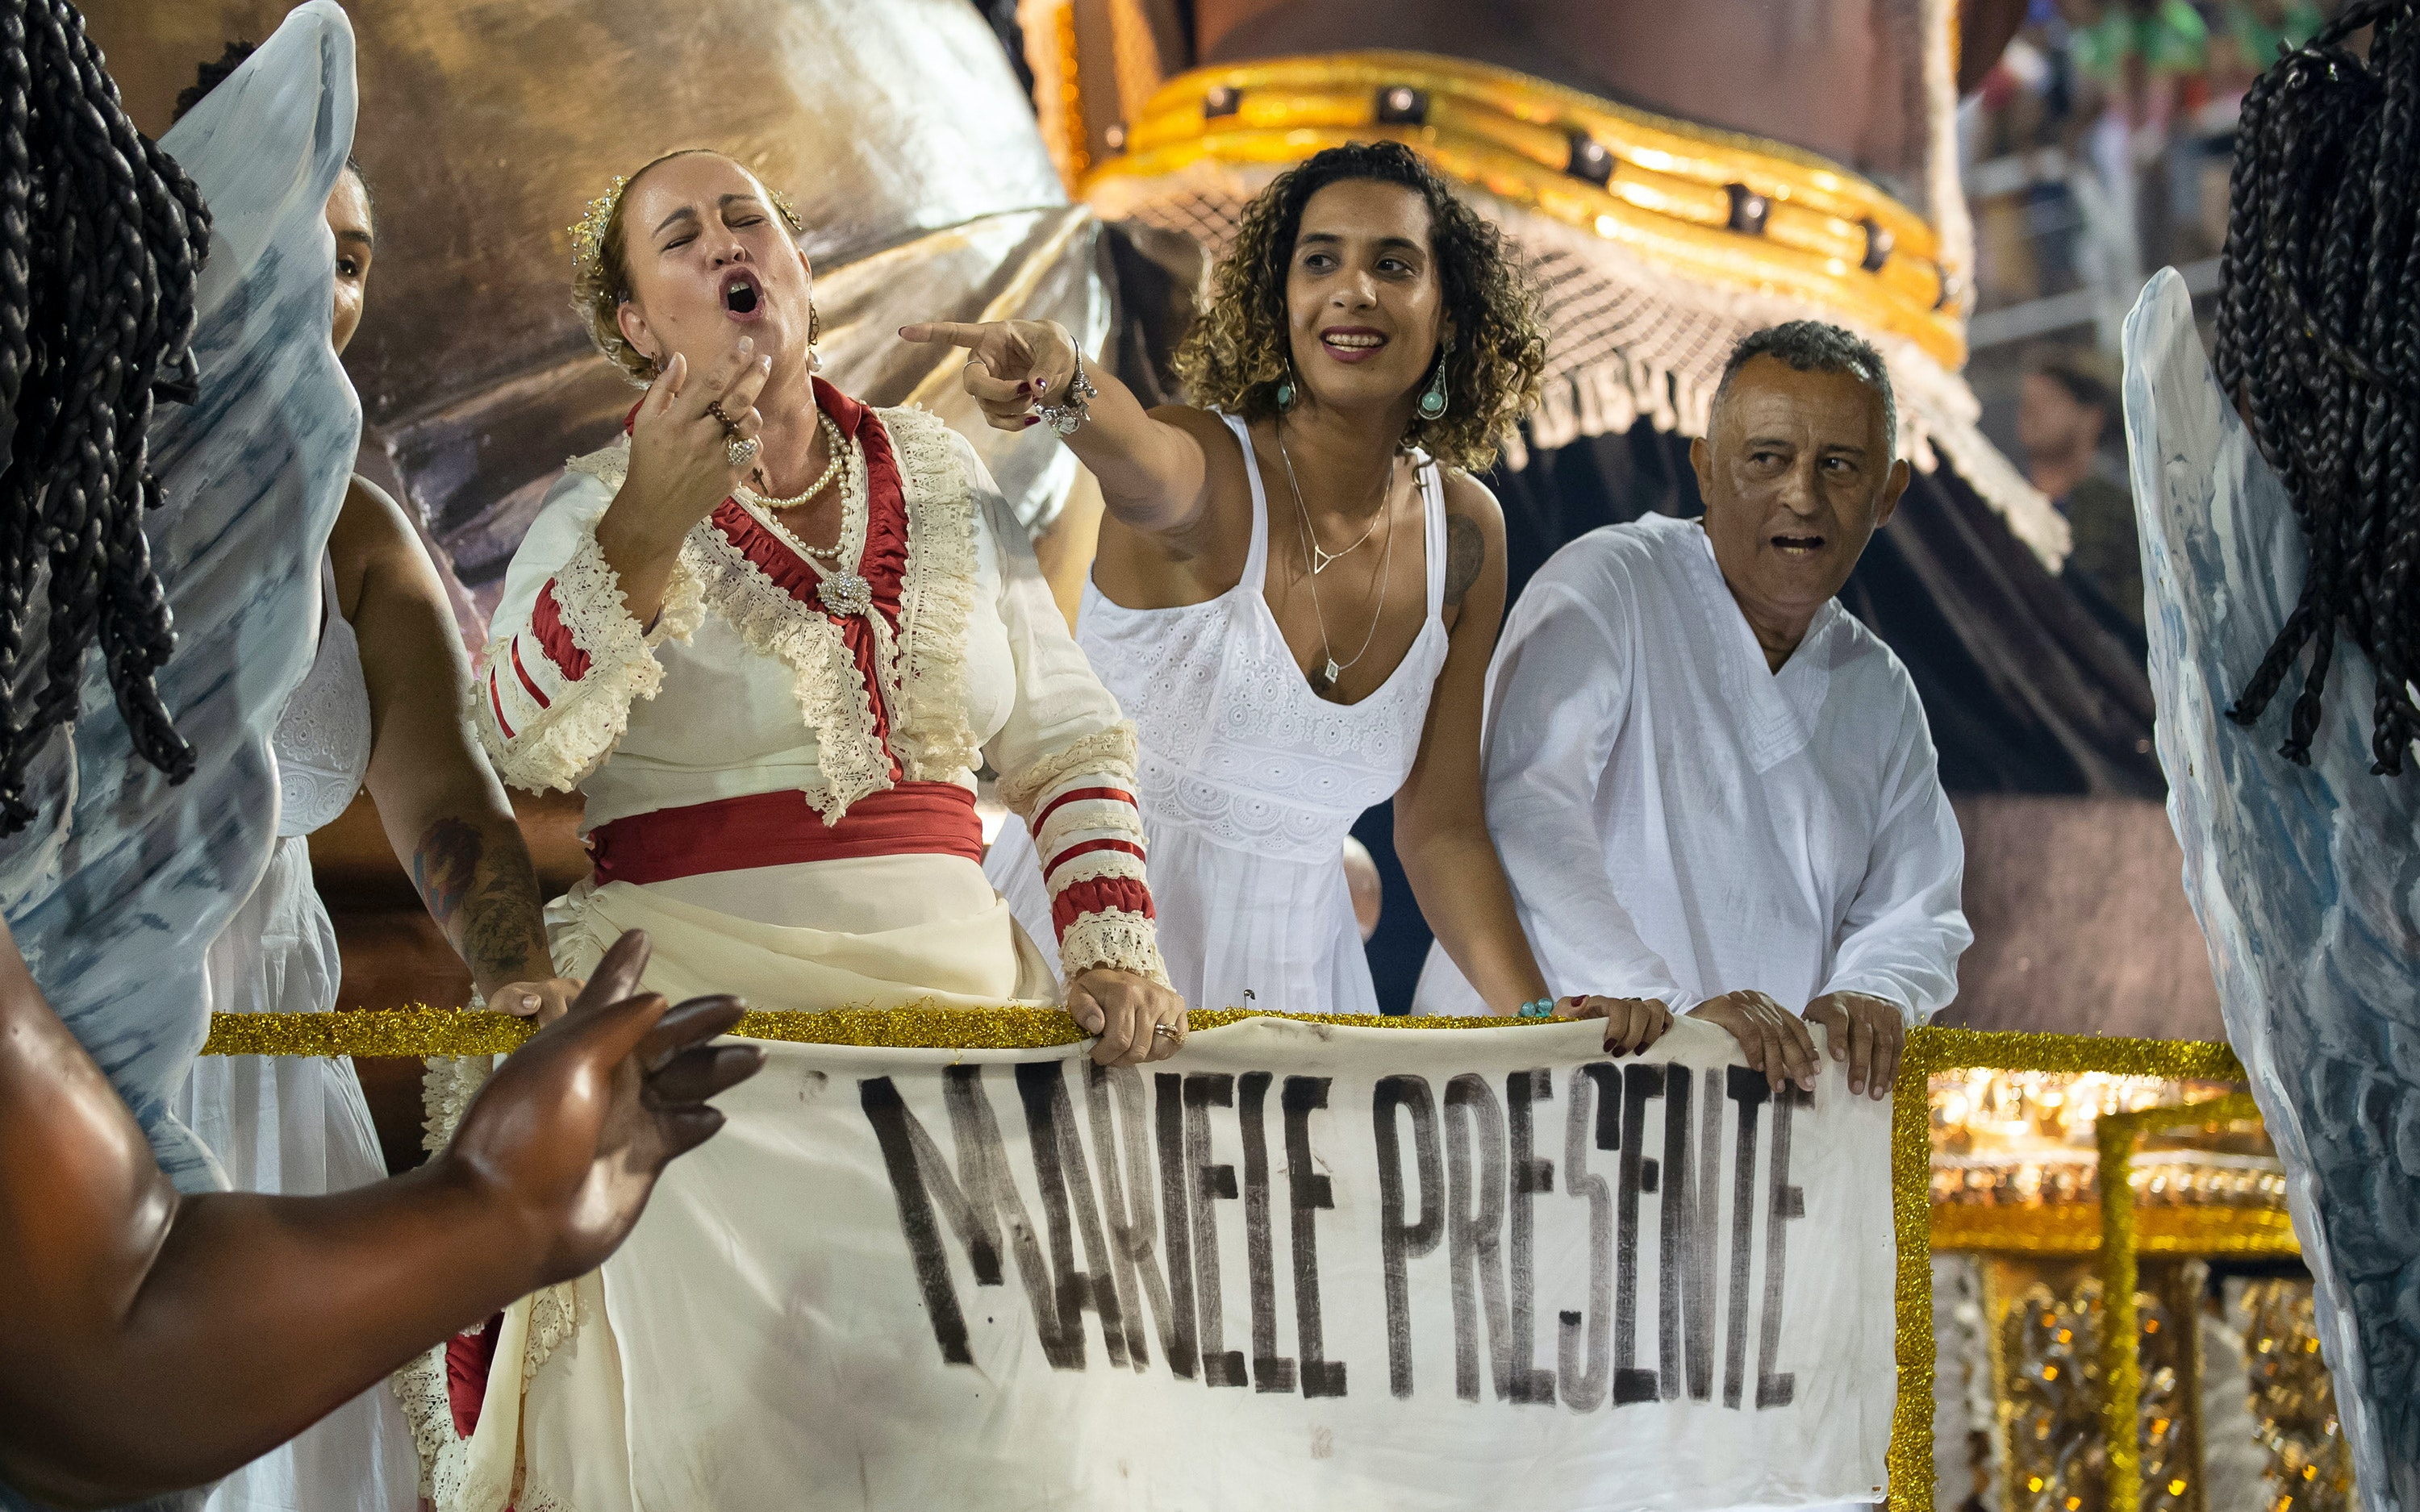 Anielle Franco and others on a float in a parade